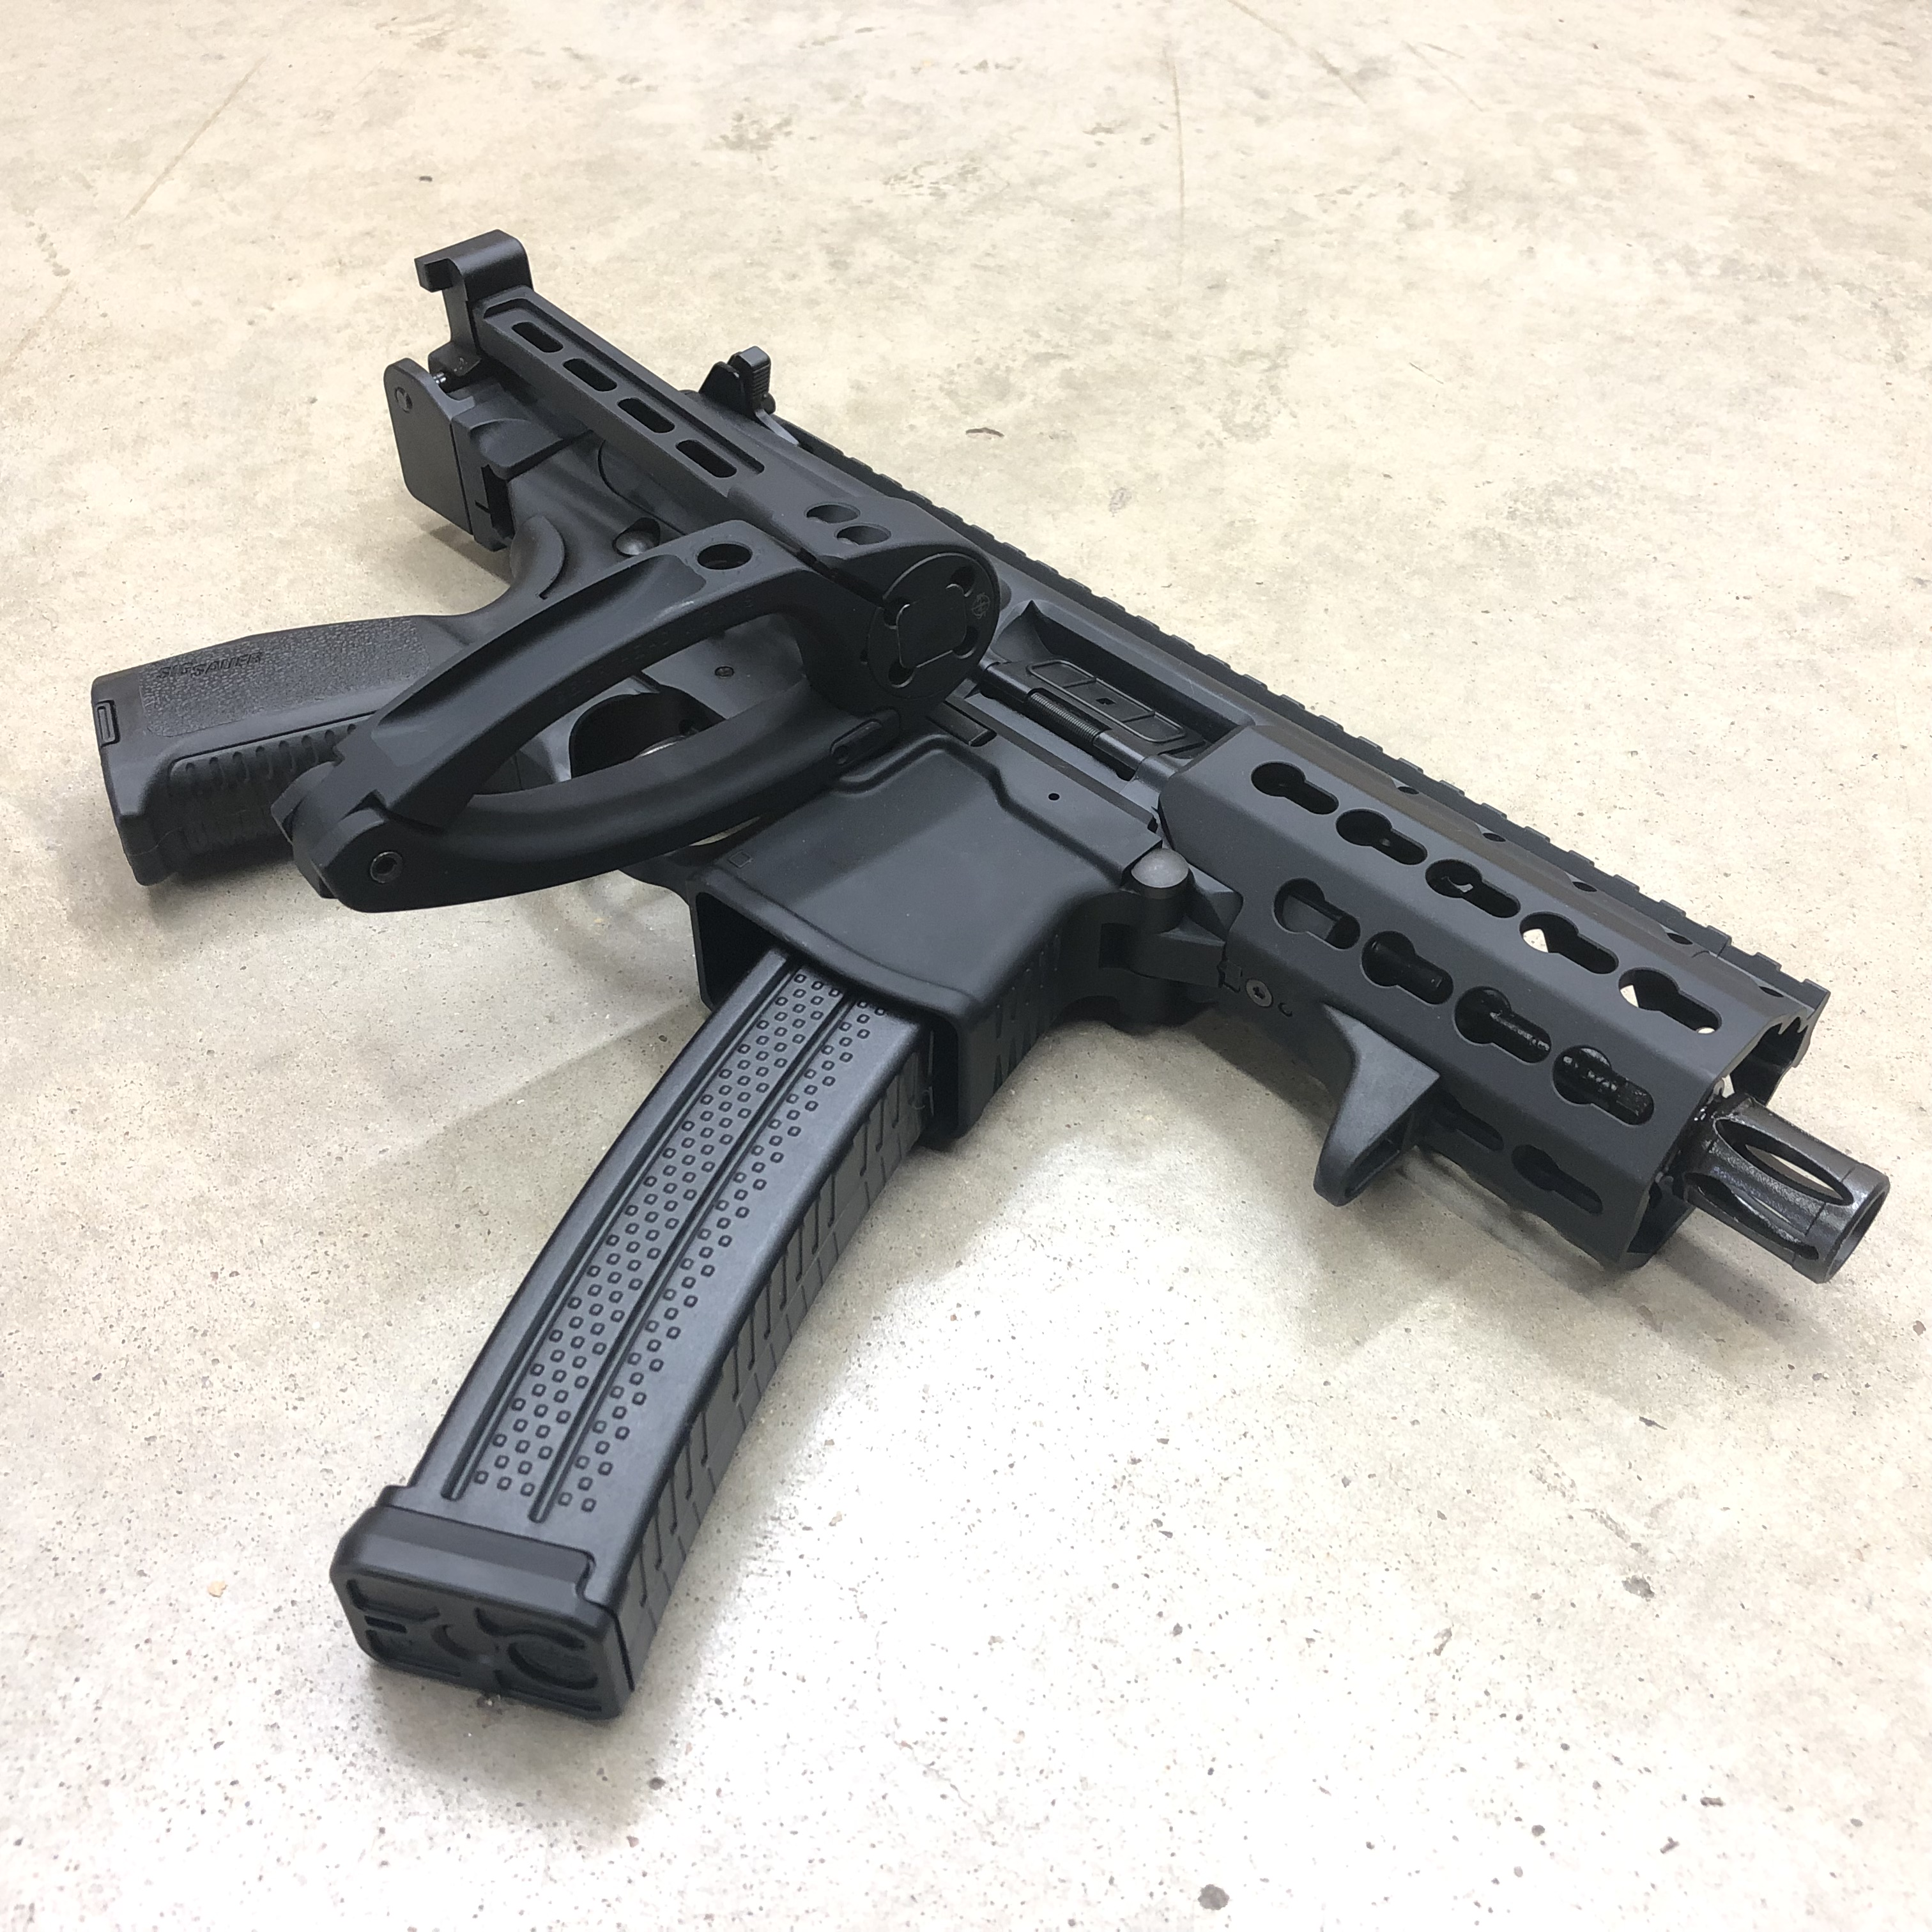 Lage/Tailhook Adapter Combo Kit for Sig MPX